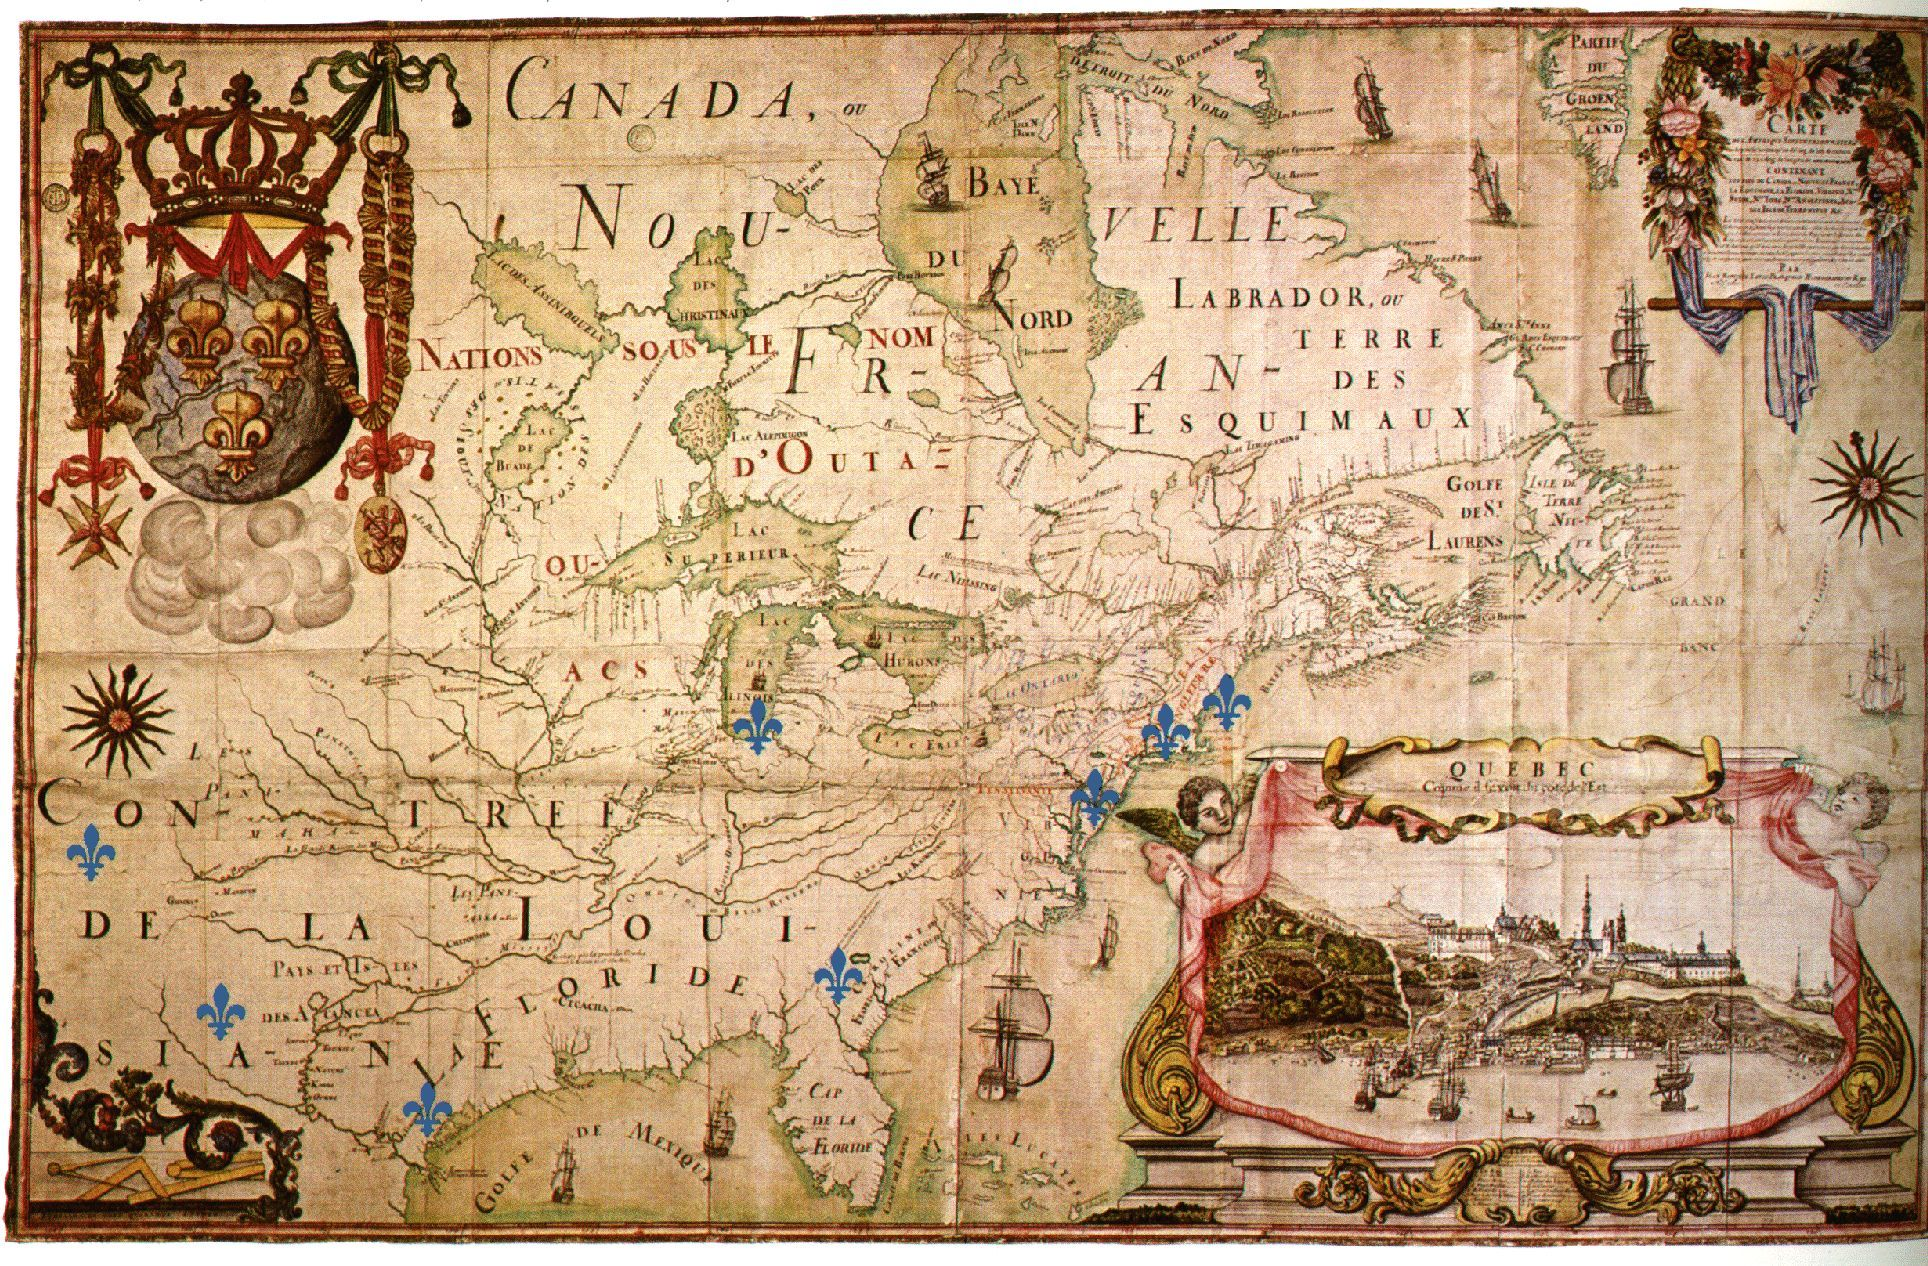 10 awesome new france map 1712 images collage journal abstract 10 awesome new france map 1712 images gumiabroncs Images